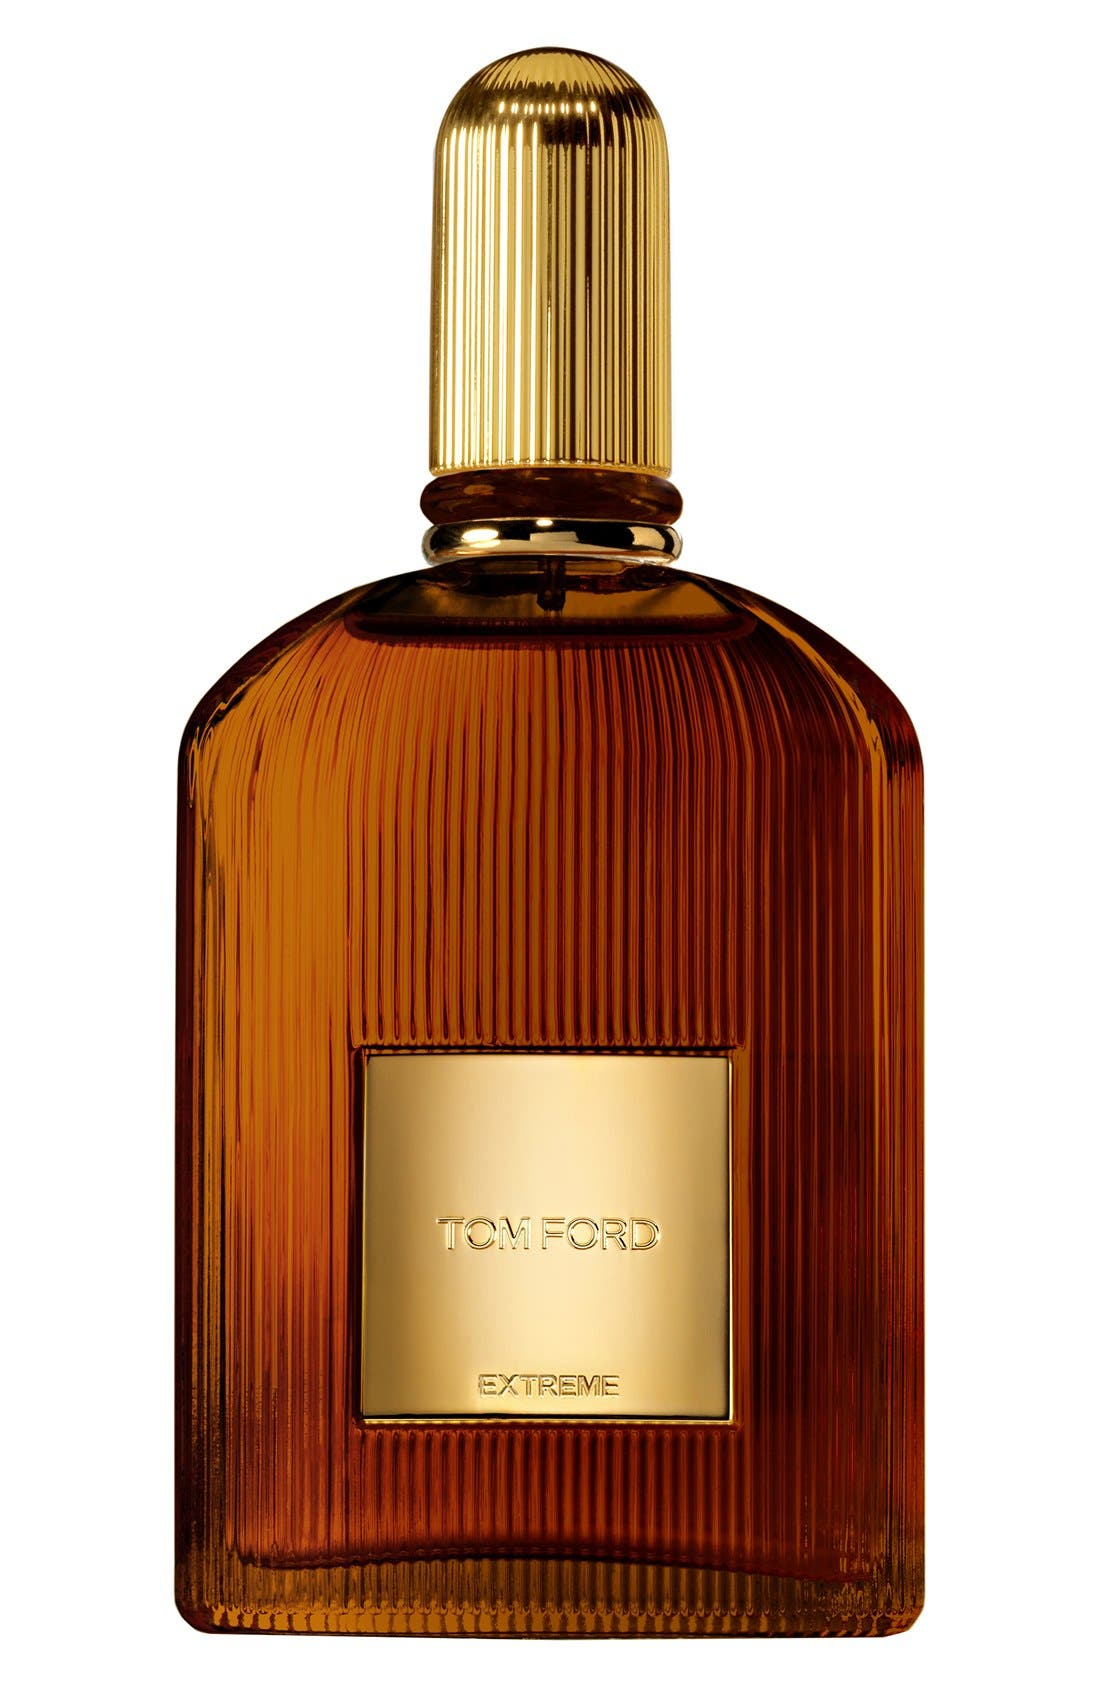 Tom Ford Extreme Eau de Toilette